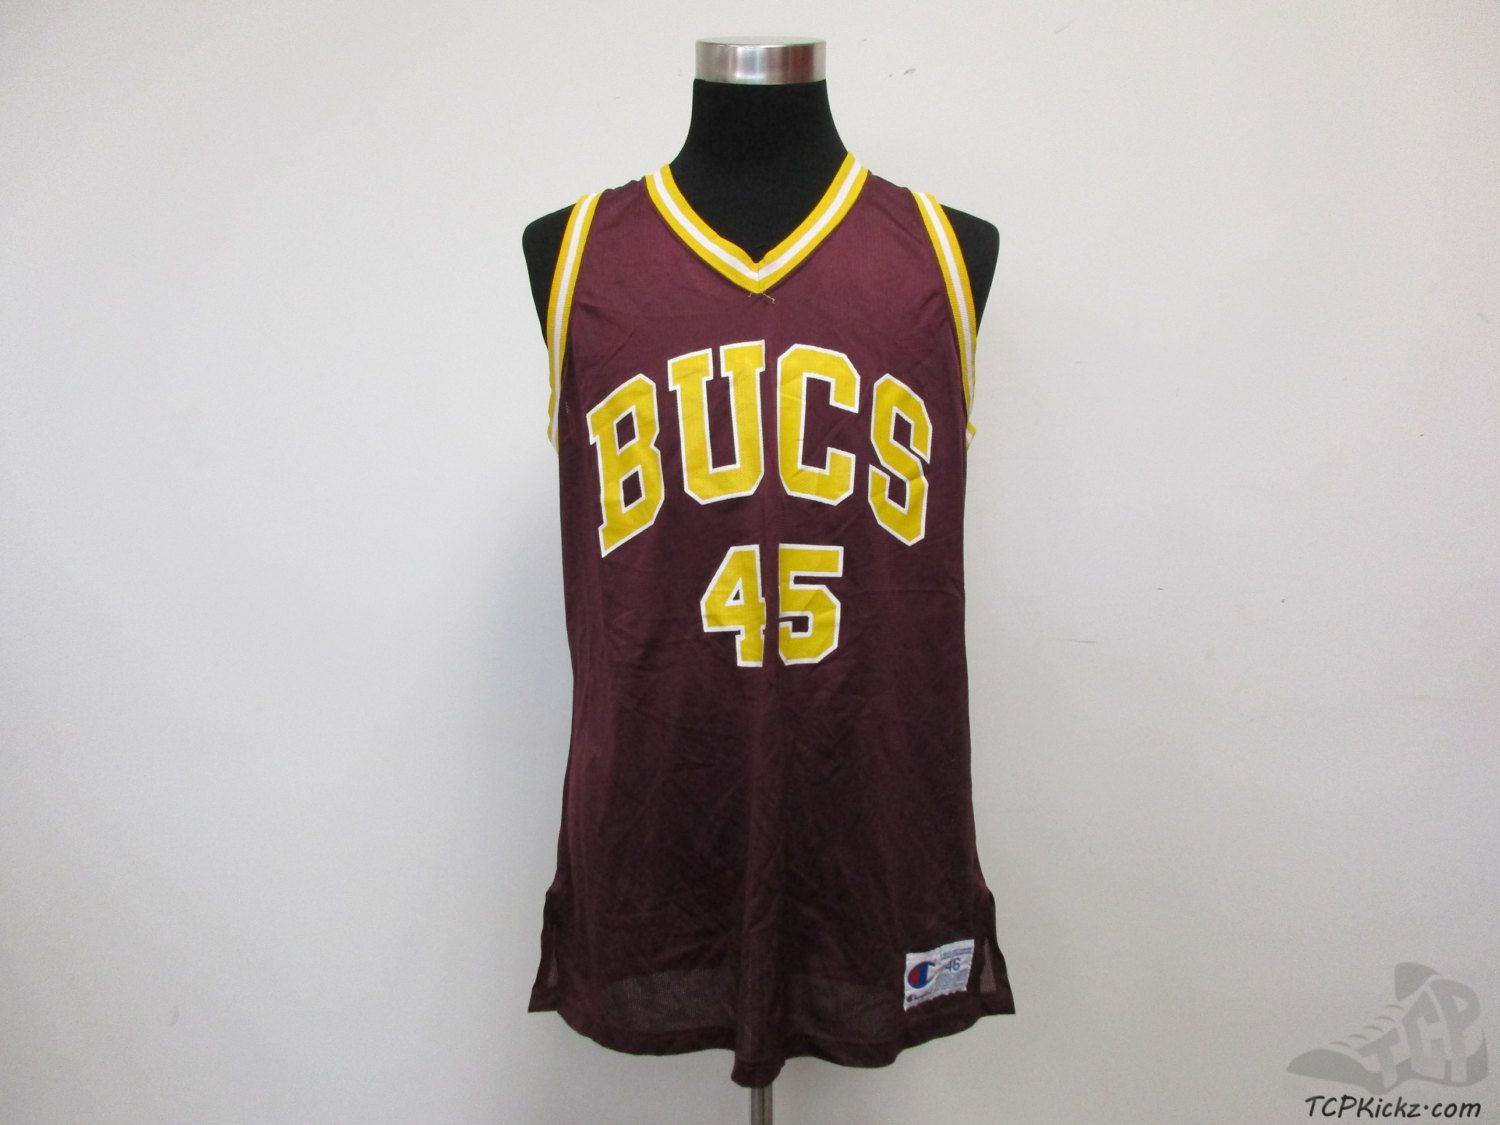 Vtg 90s Champion Bucs Buccaneers Basketball Jersey 45 Sz 46 Yellow Maroon Vintage By Tcpkickz On Etsy Basketball Jersey Champion Jersey